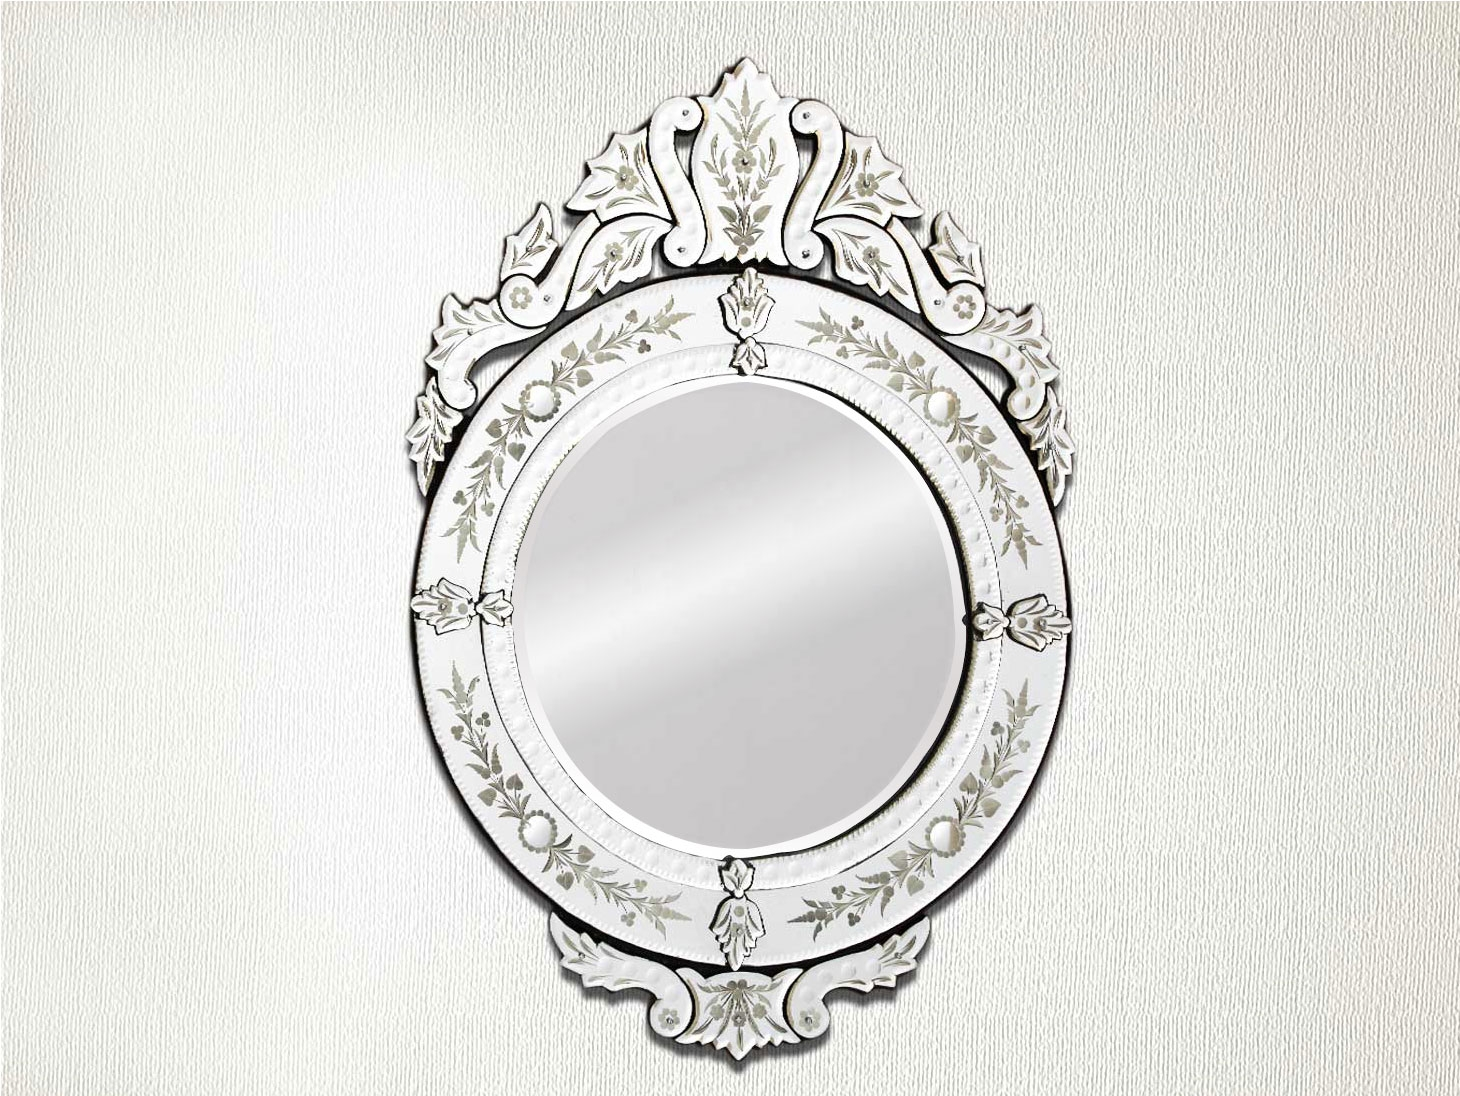 Venetian Mirror 3625 Inches X 255 Inches Throughout Round Venetian Mirror (Image 11 of 15)